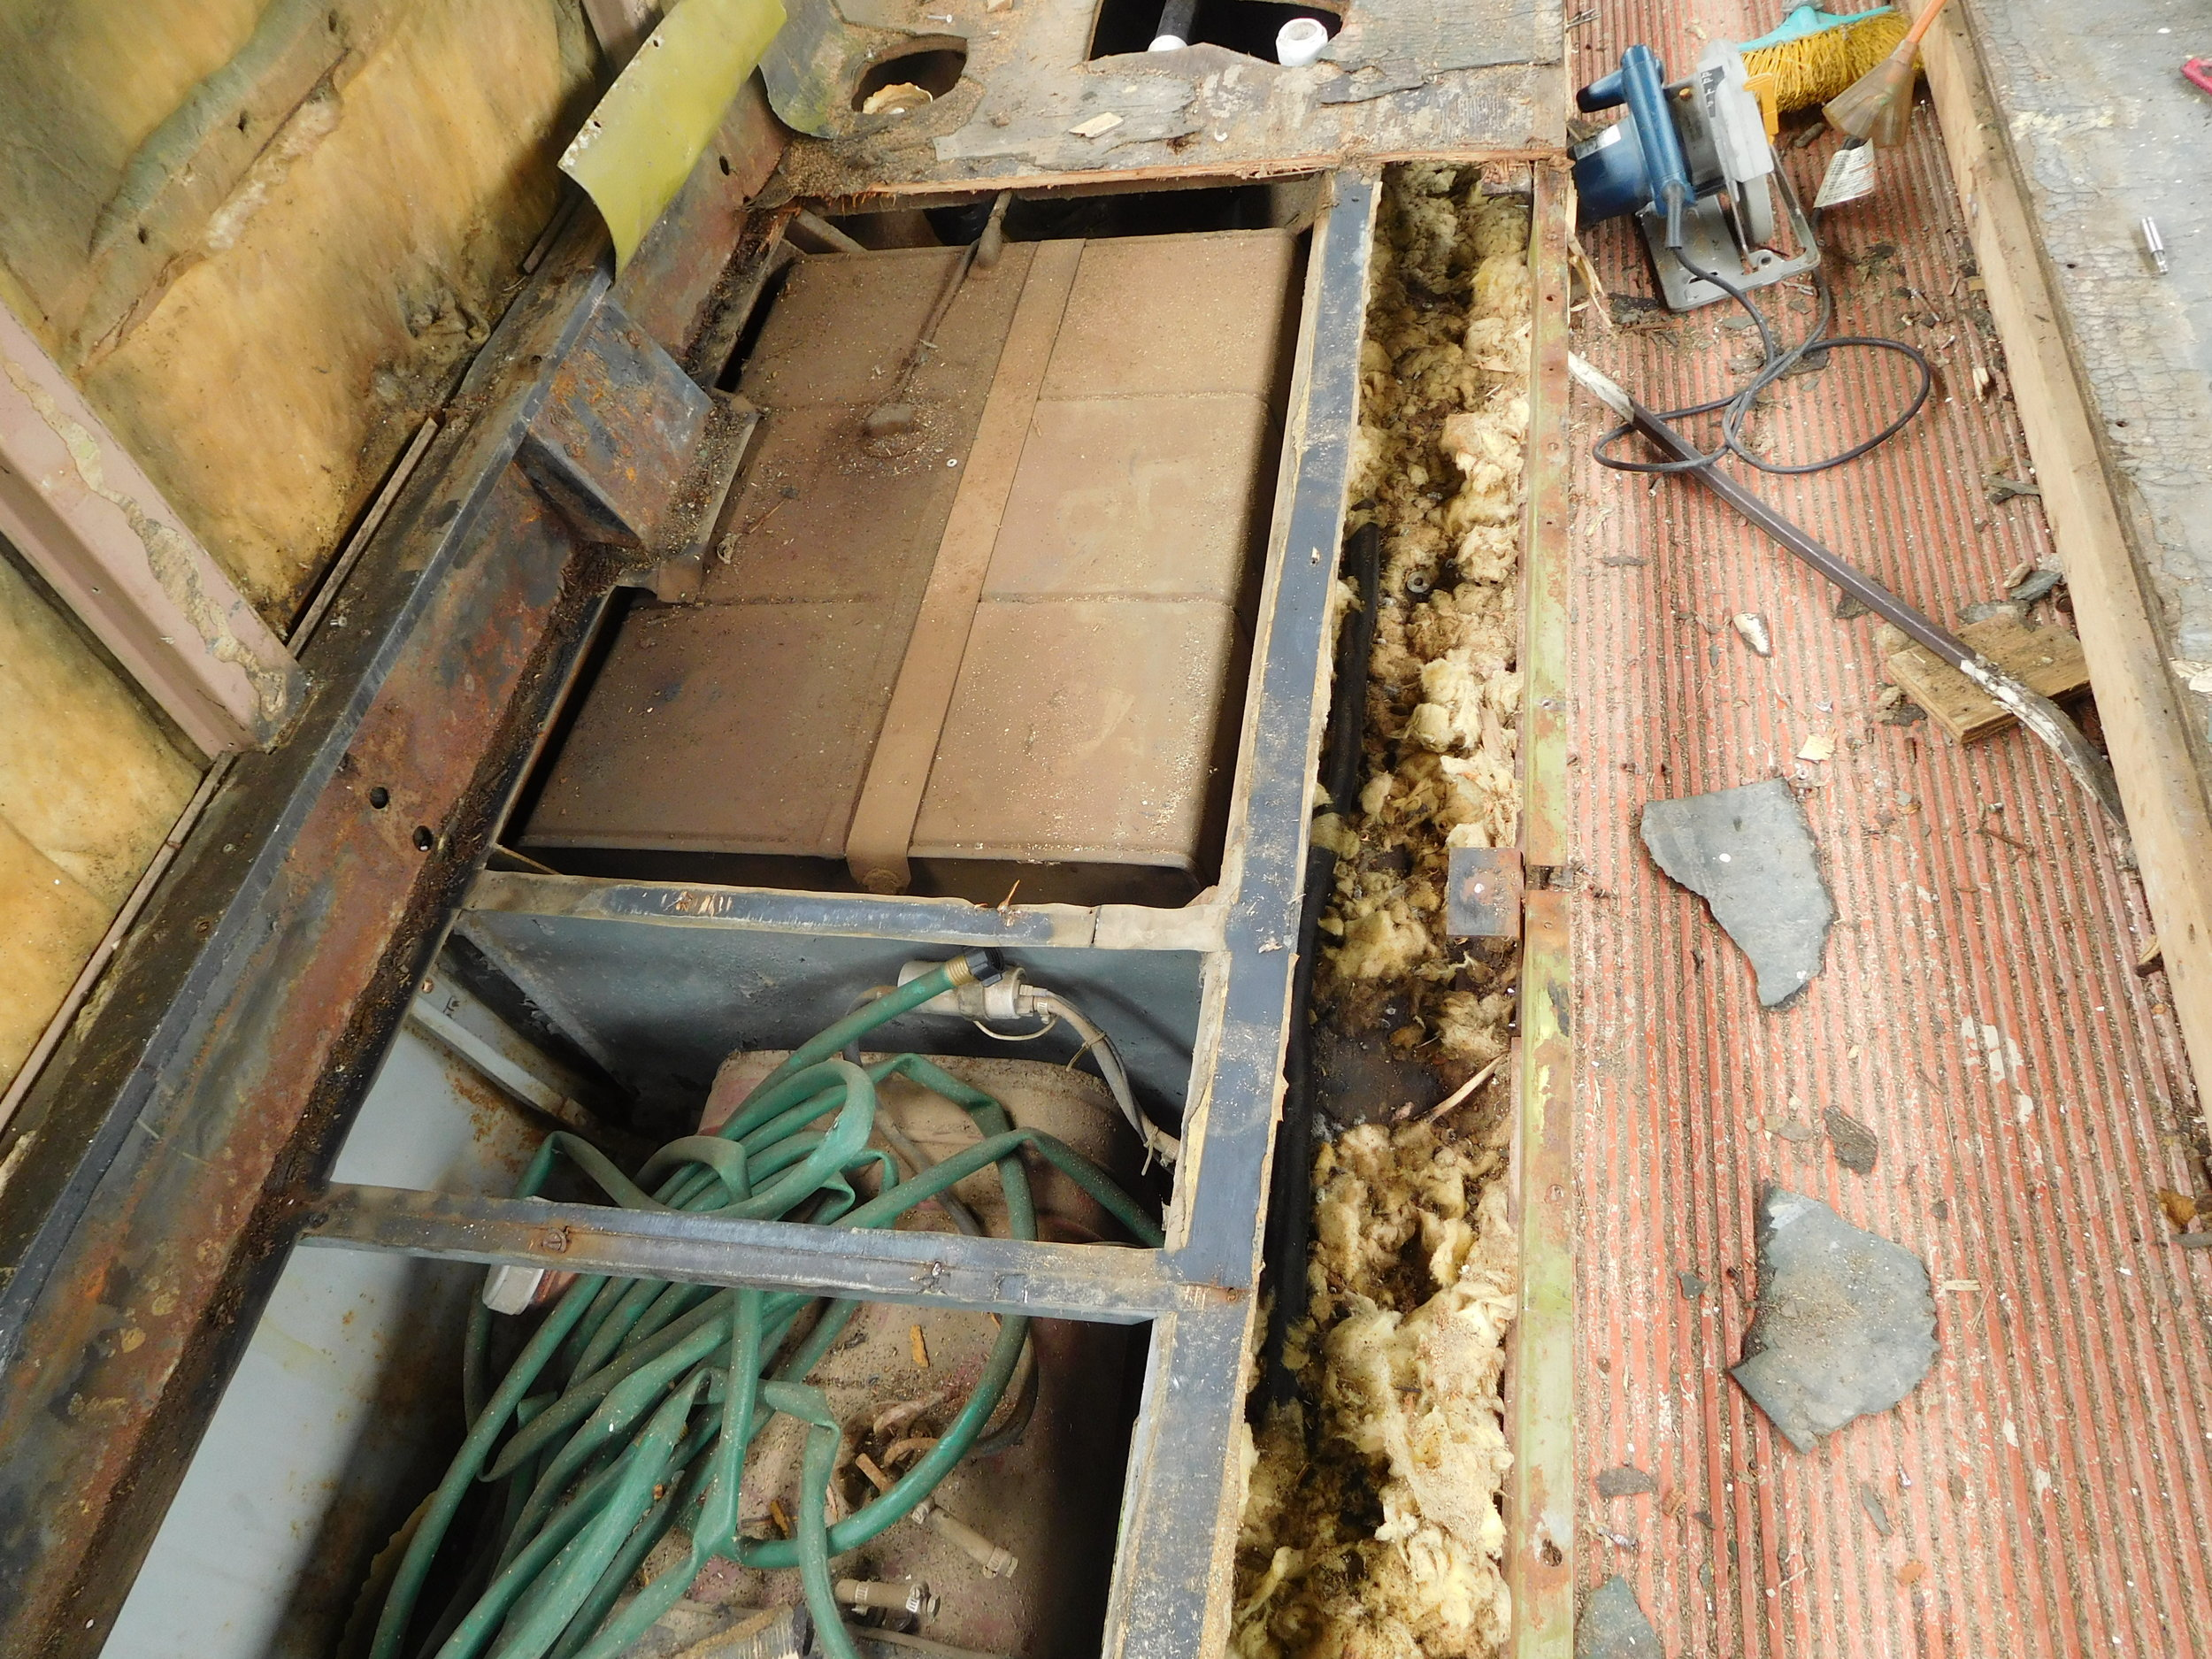 Floor and tanks below are removed